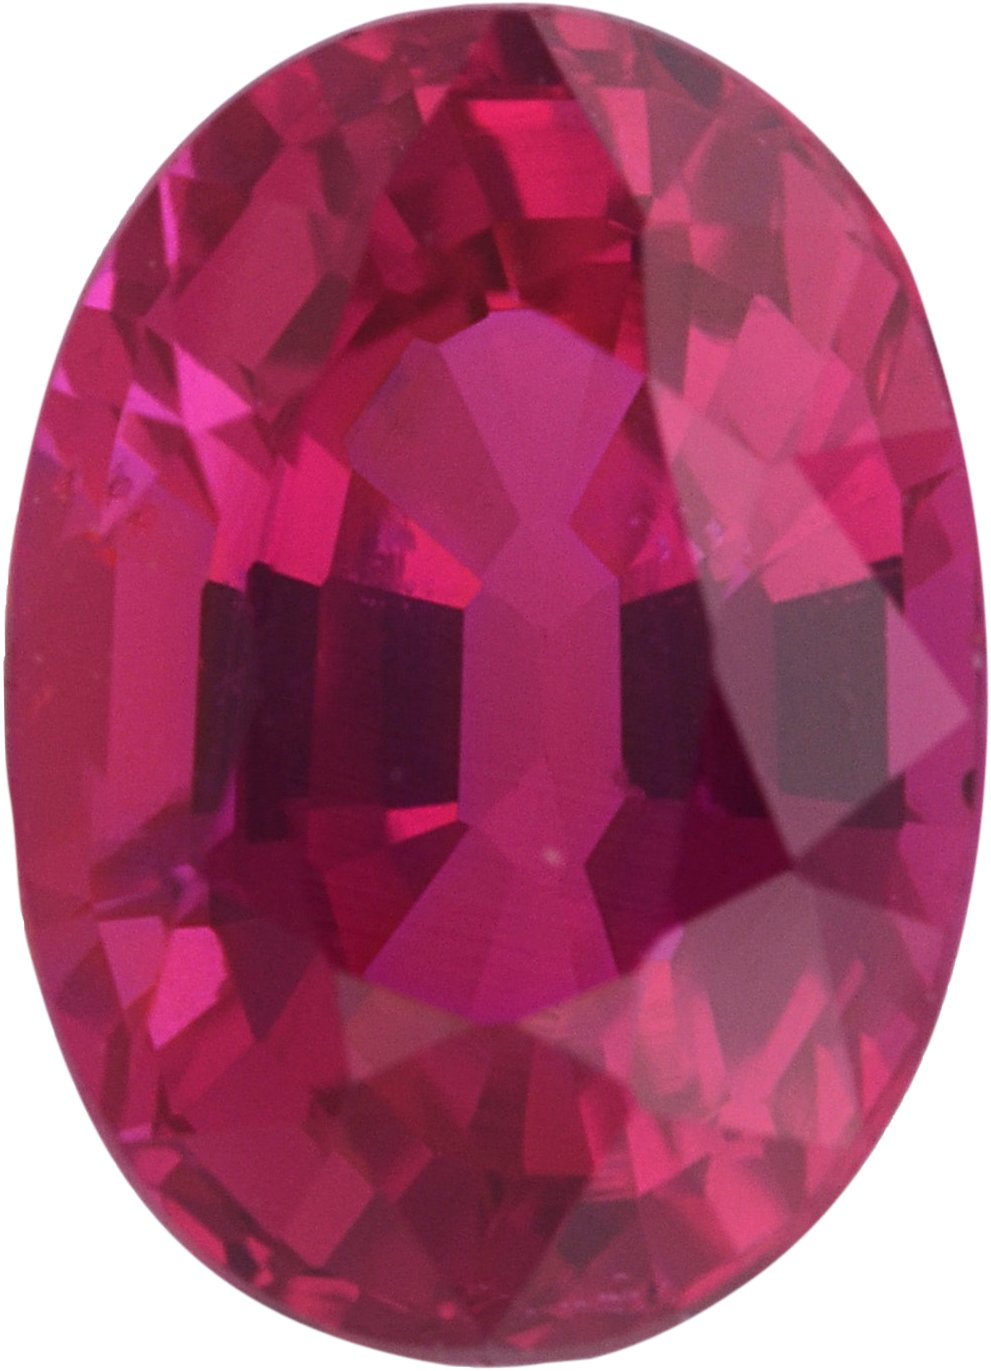 Faceted  No Treatment Ruby Loose Gem in Oval Cut,  Purple Red, 6.77 x 4.89  mm, 1.13 Carats